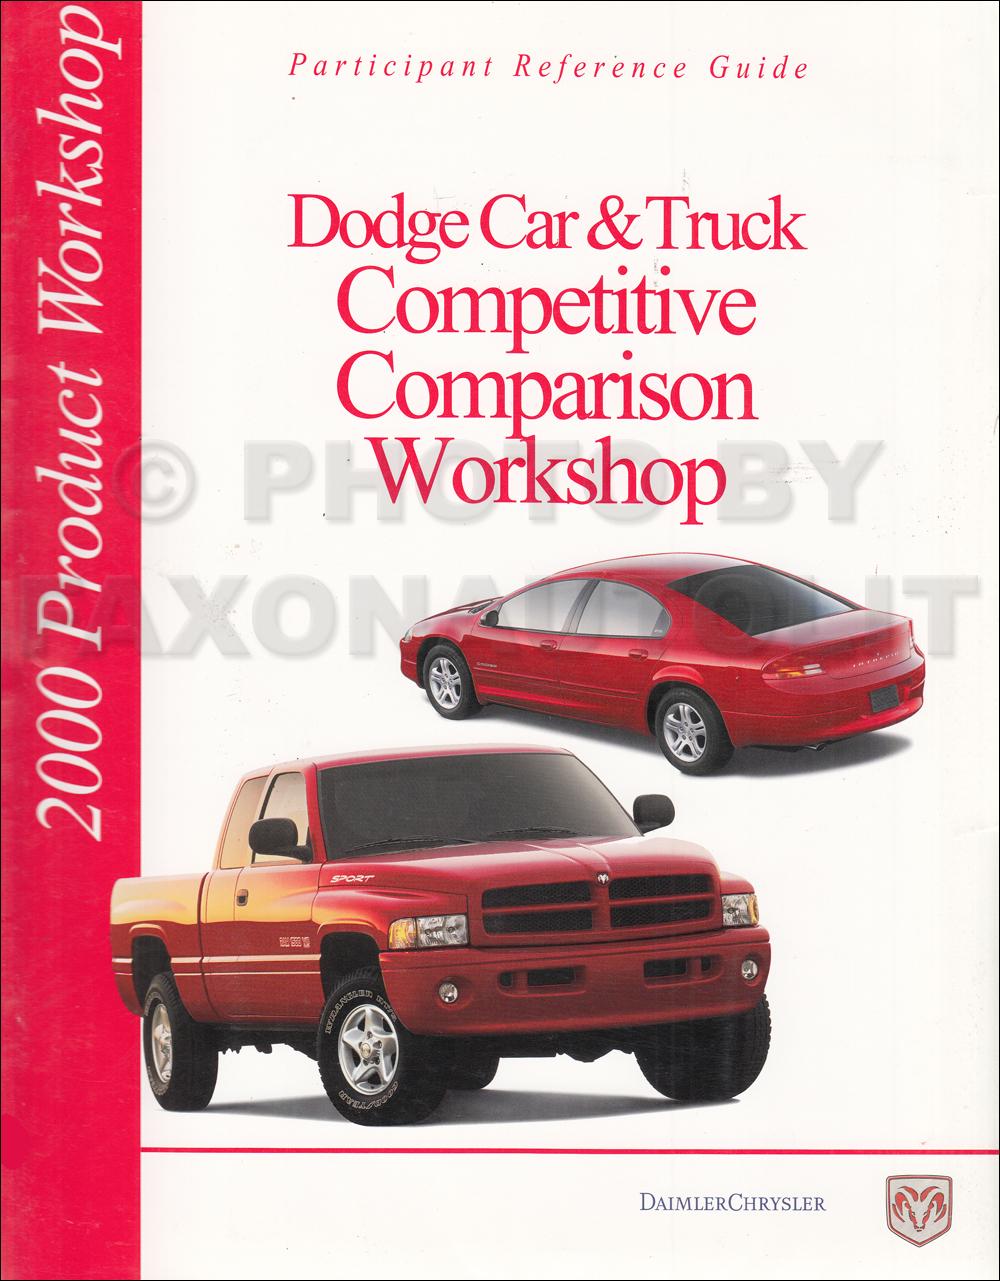 2000 Dodge Competitive Comparison Dealer Album Original